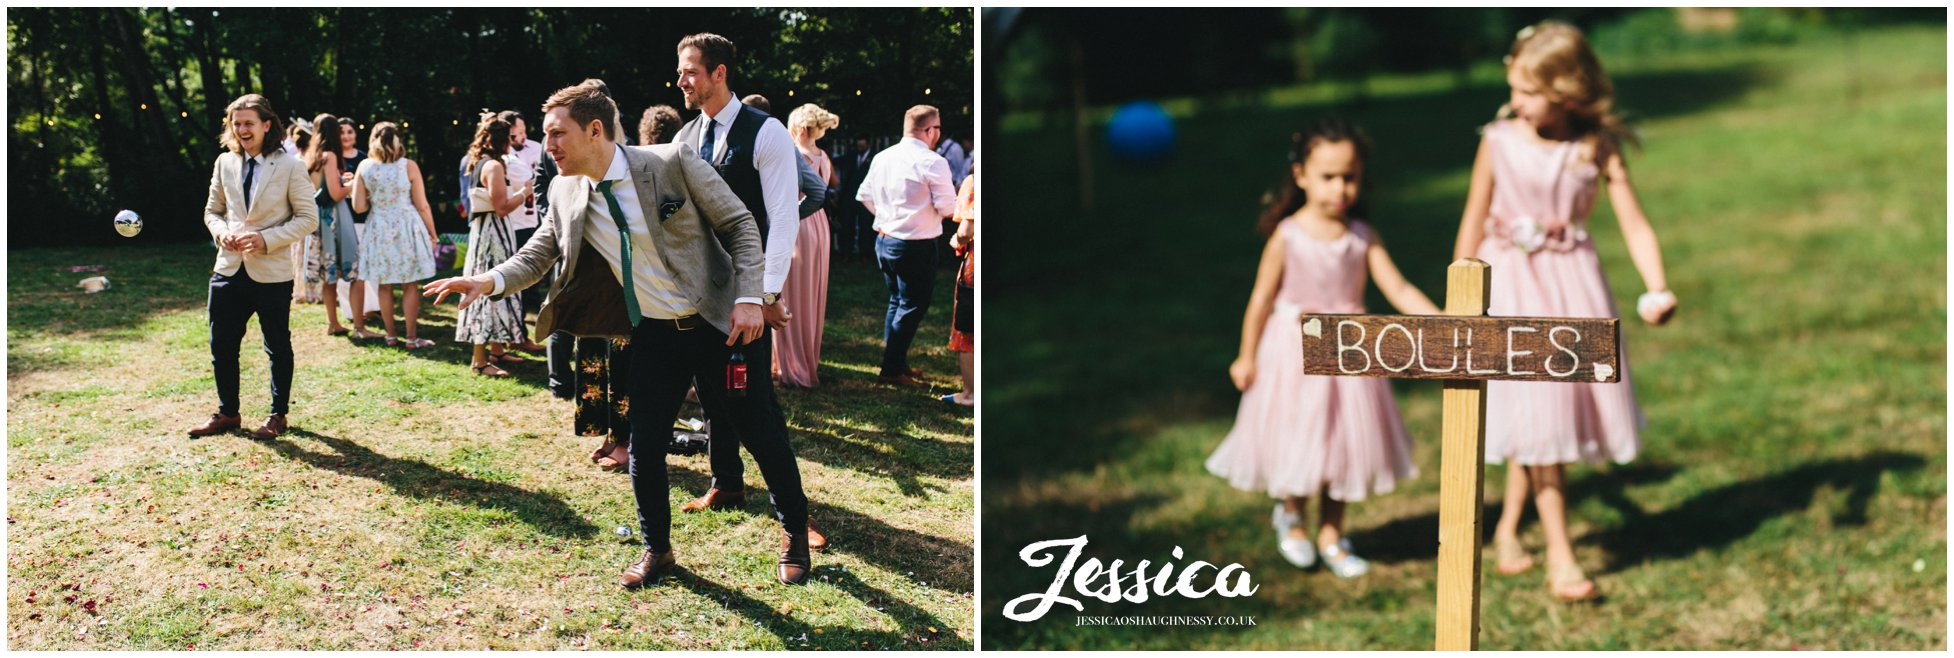 guests play lawn games at the tipi wedding at stonyford cottage gardens